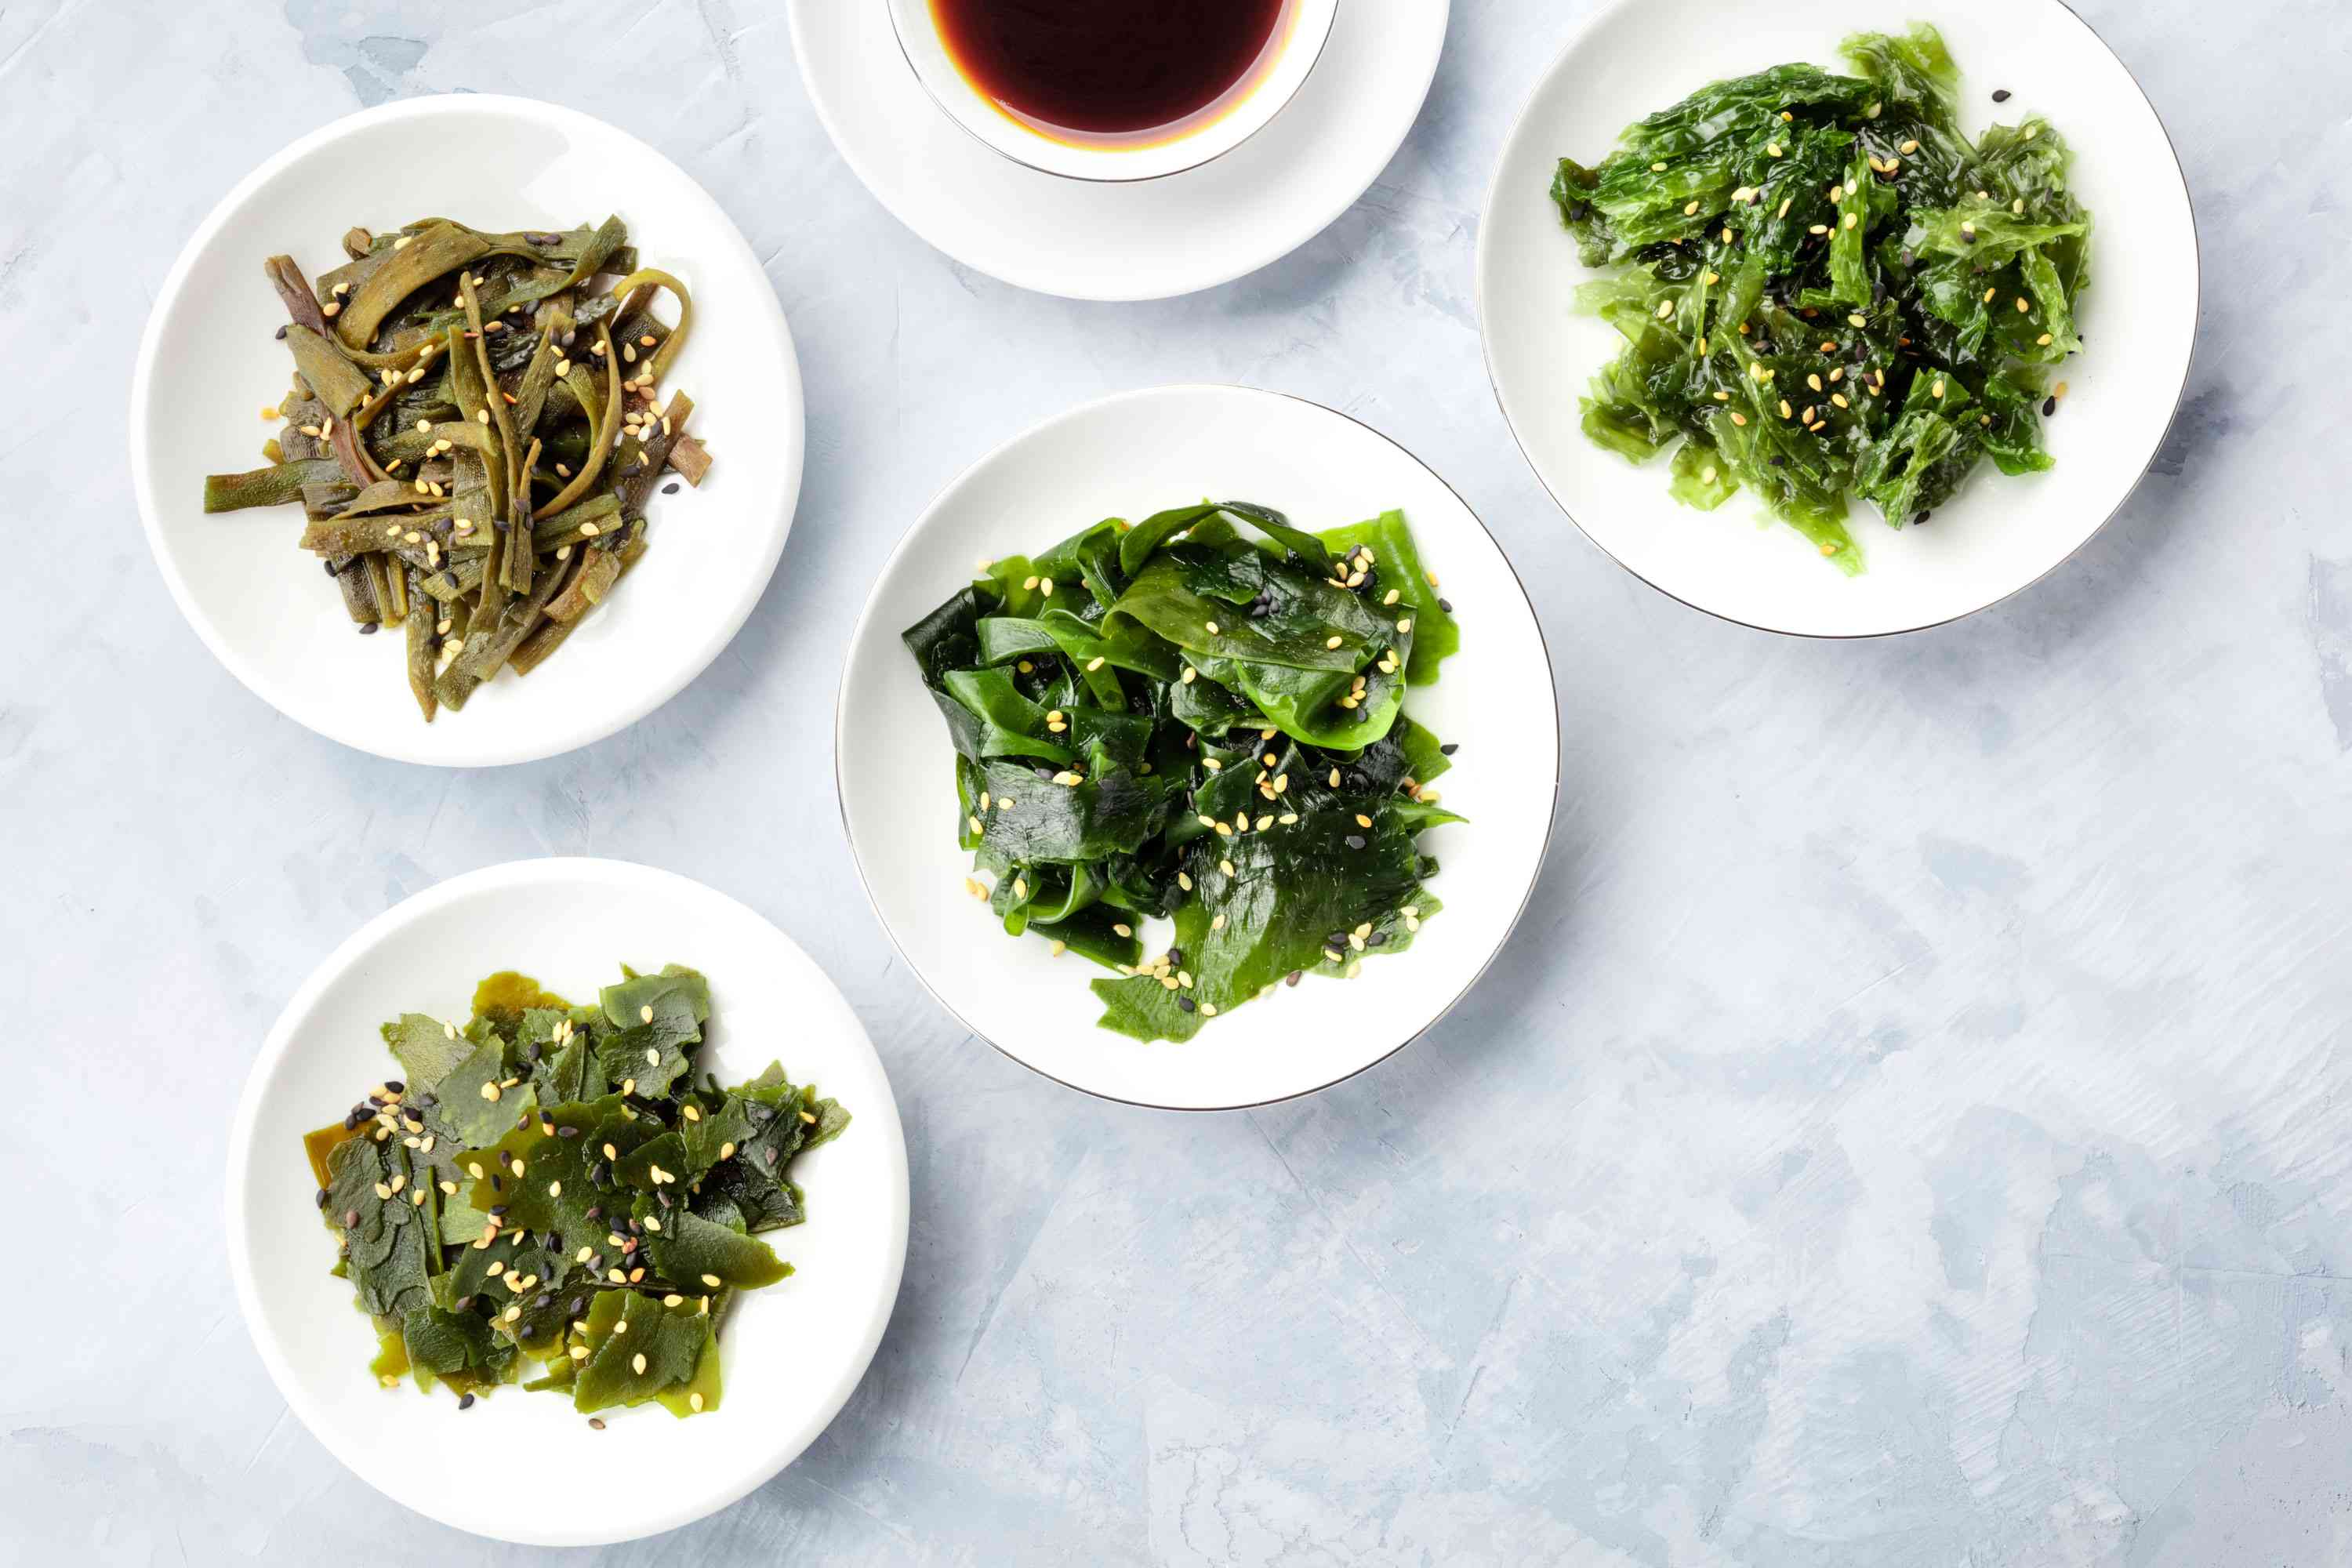 Bowls of different types of seaweed topped with sesame seeds